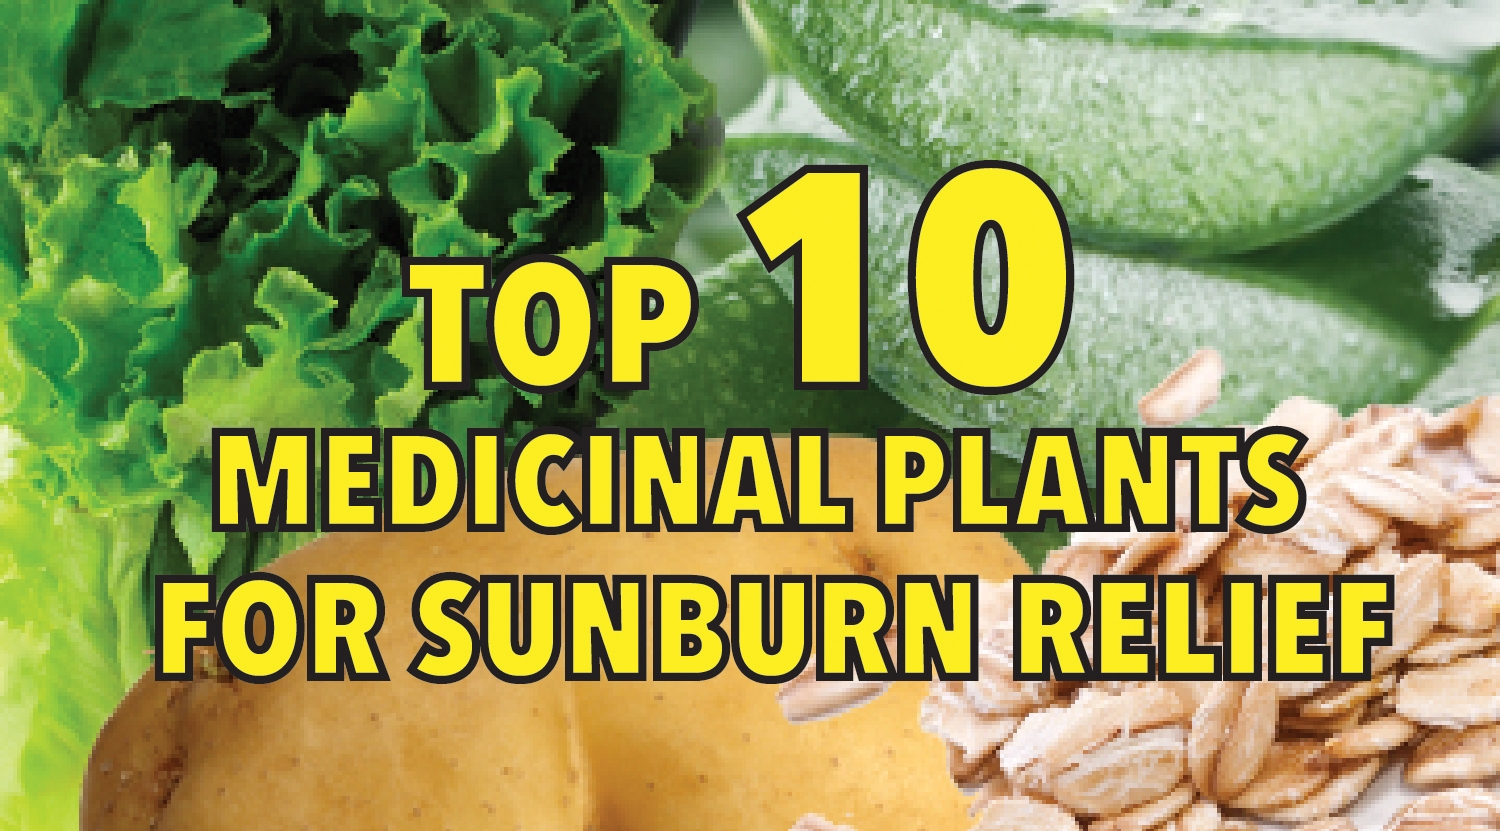 Top 10 medicinal plants for sunburn relief